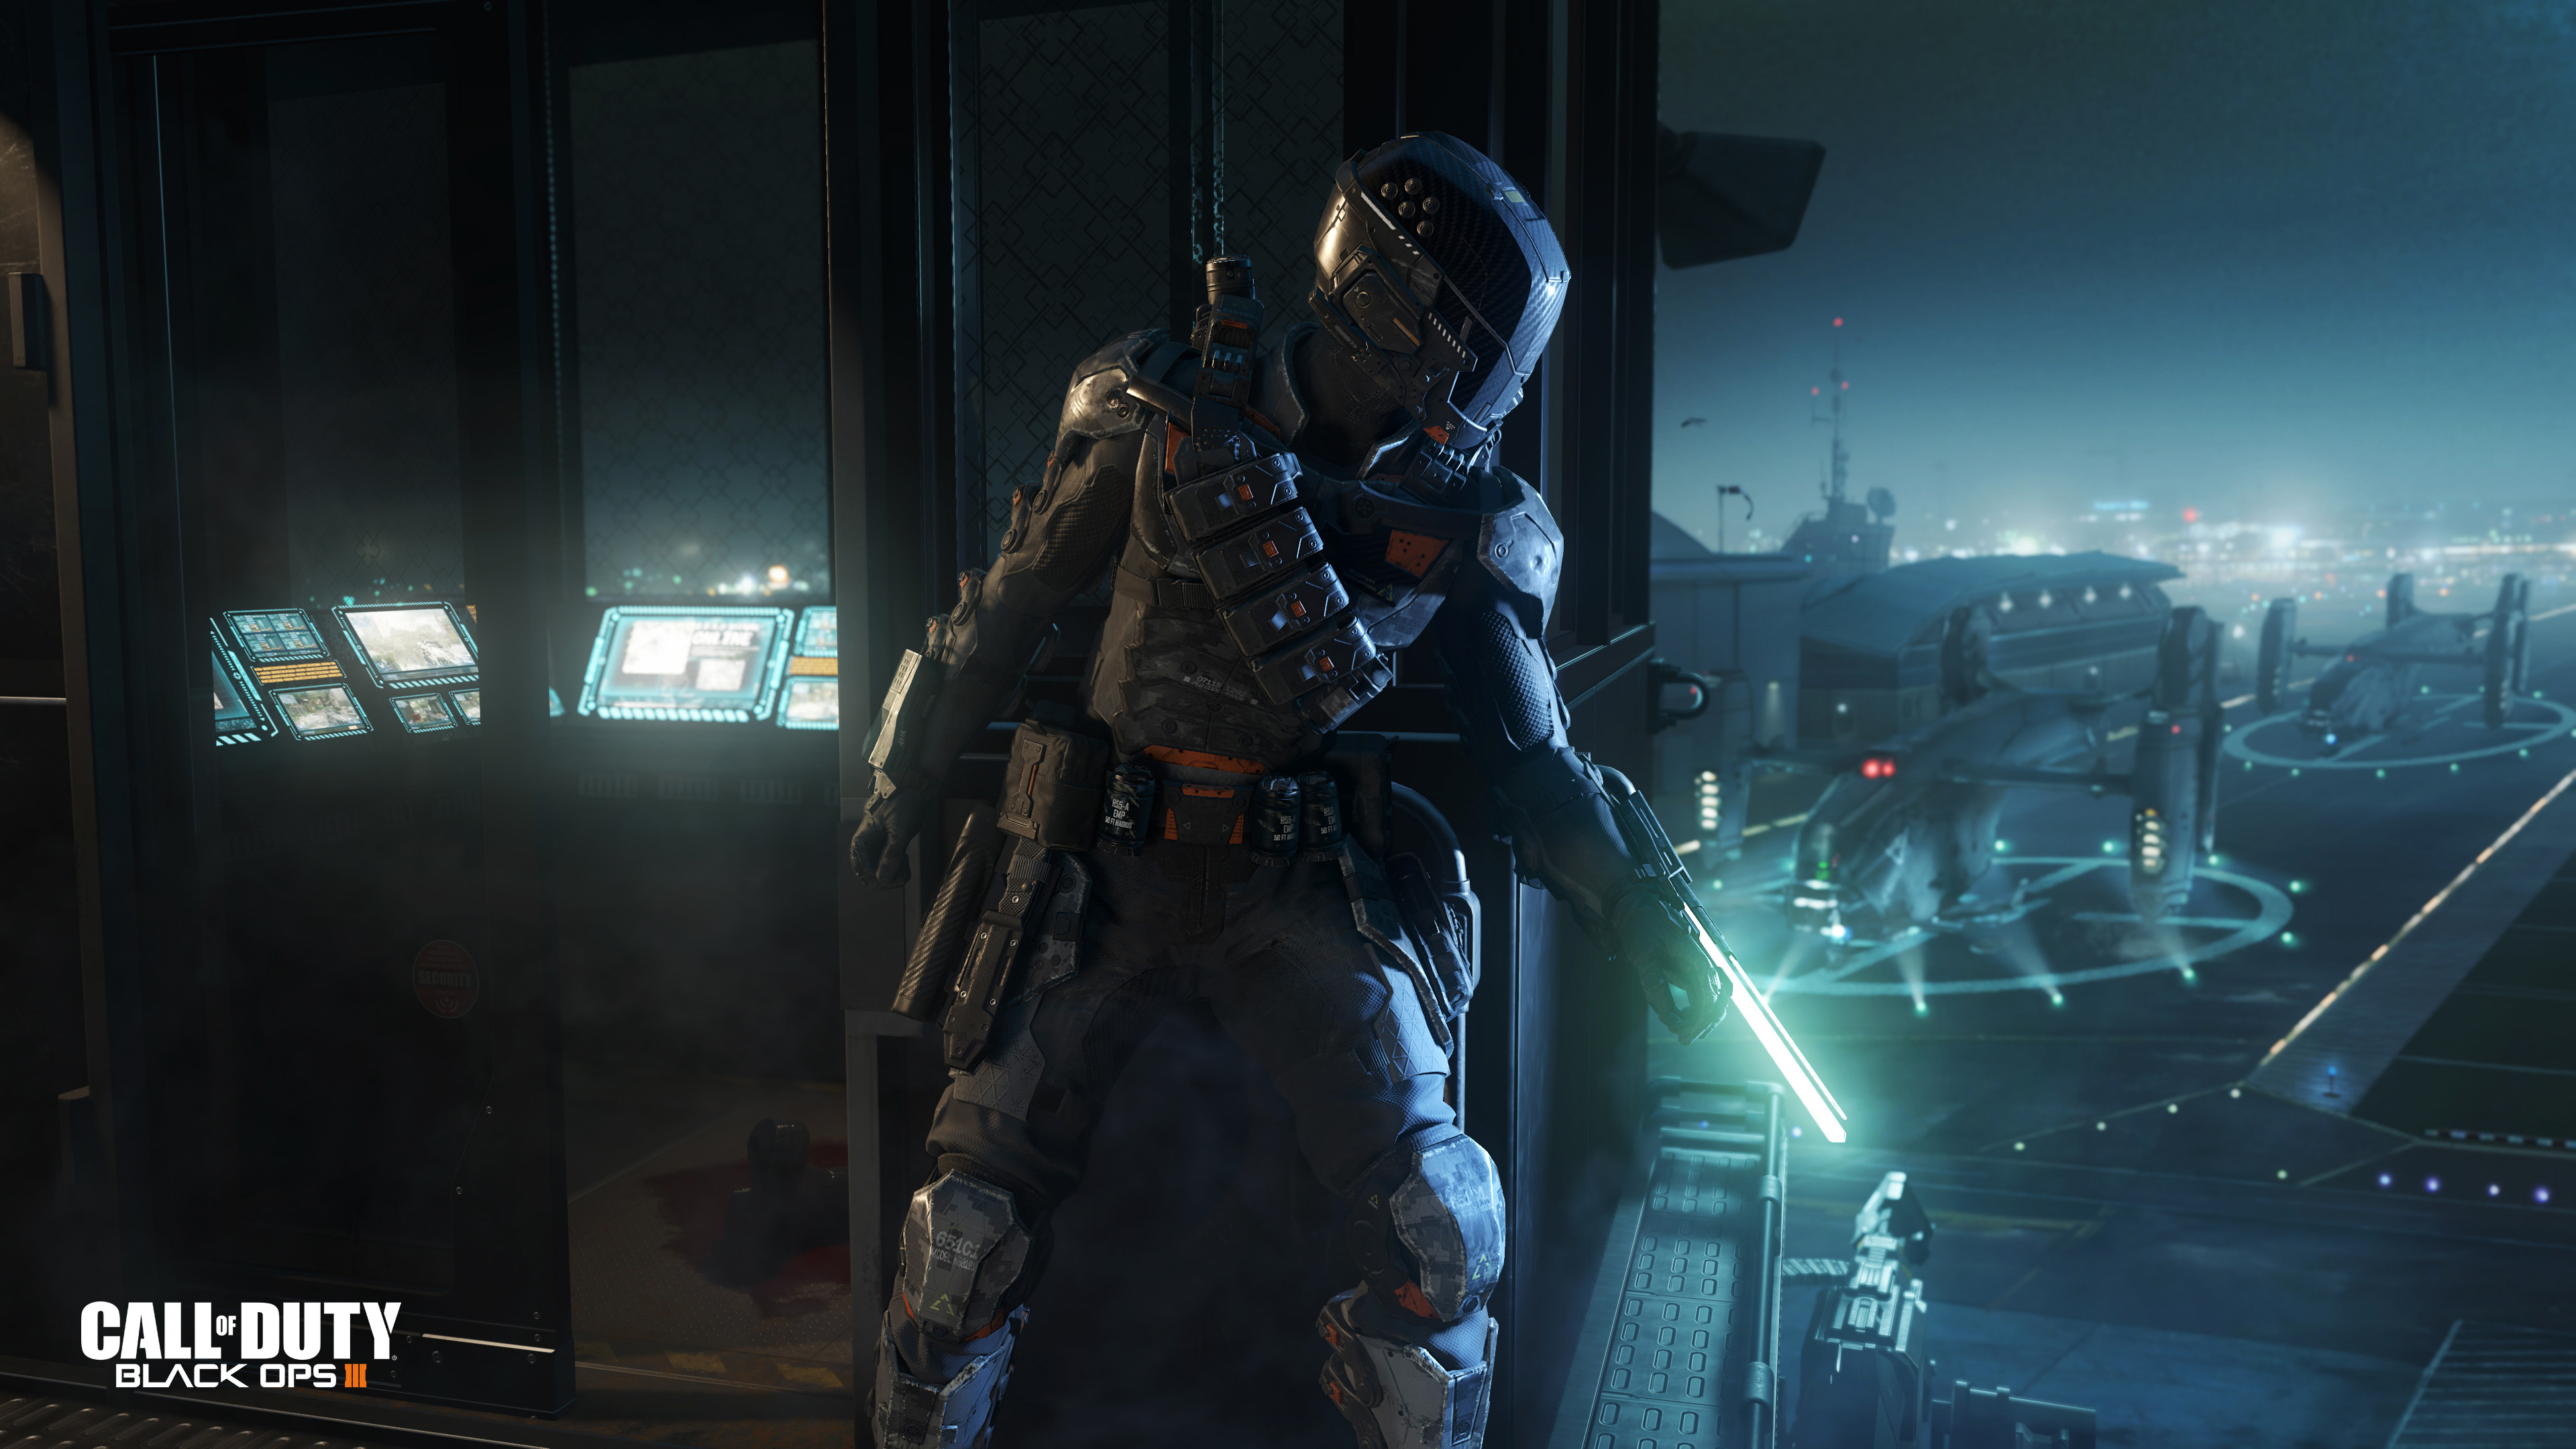 Call of Duty Black Ops 3 Spectre